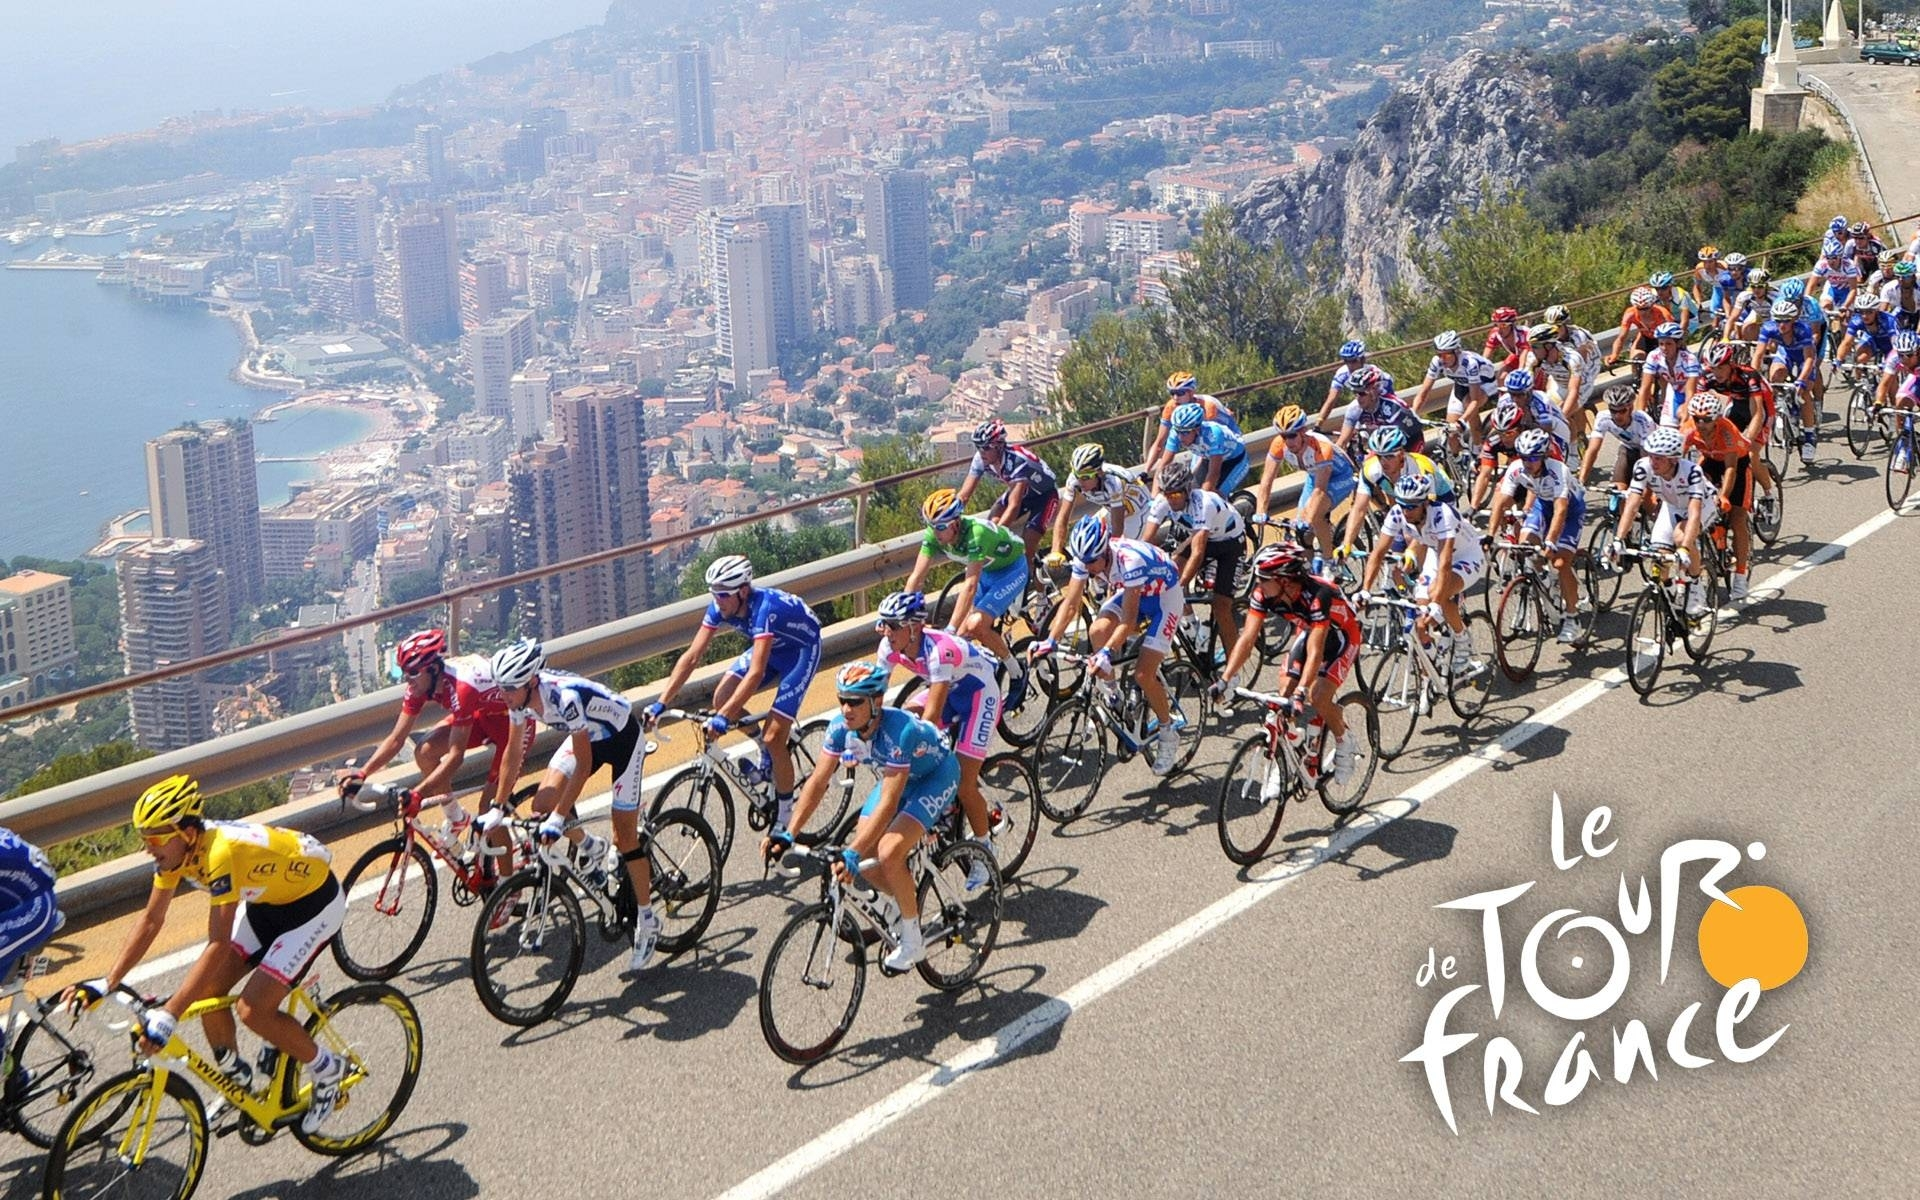 tour de france wallpapers - wallpaper cave